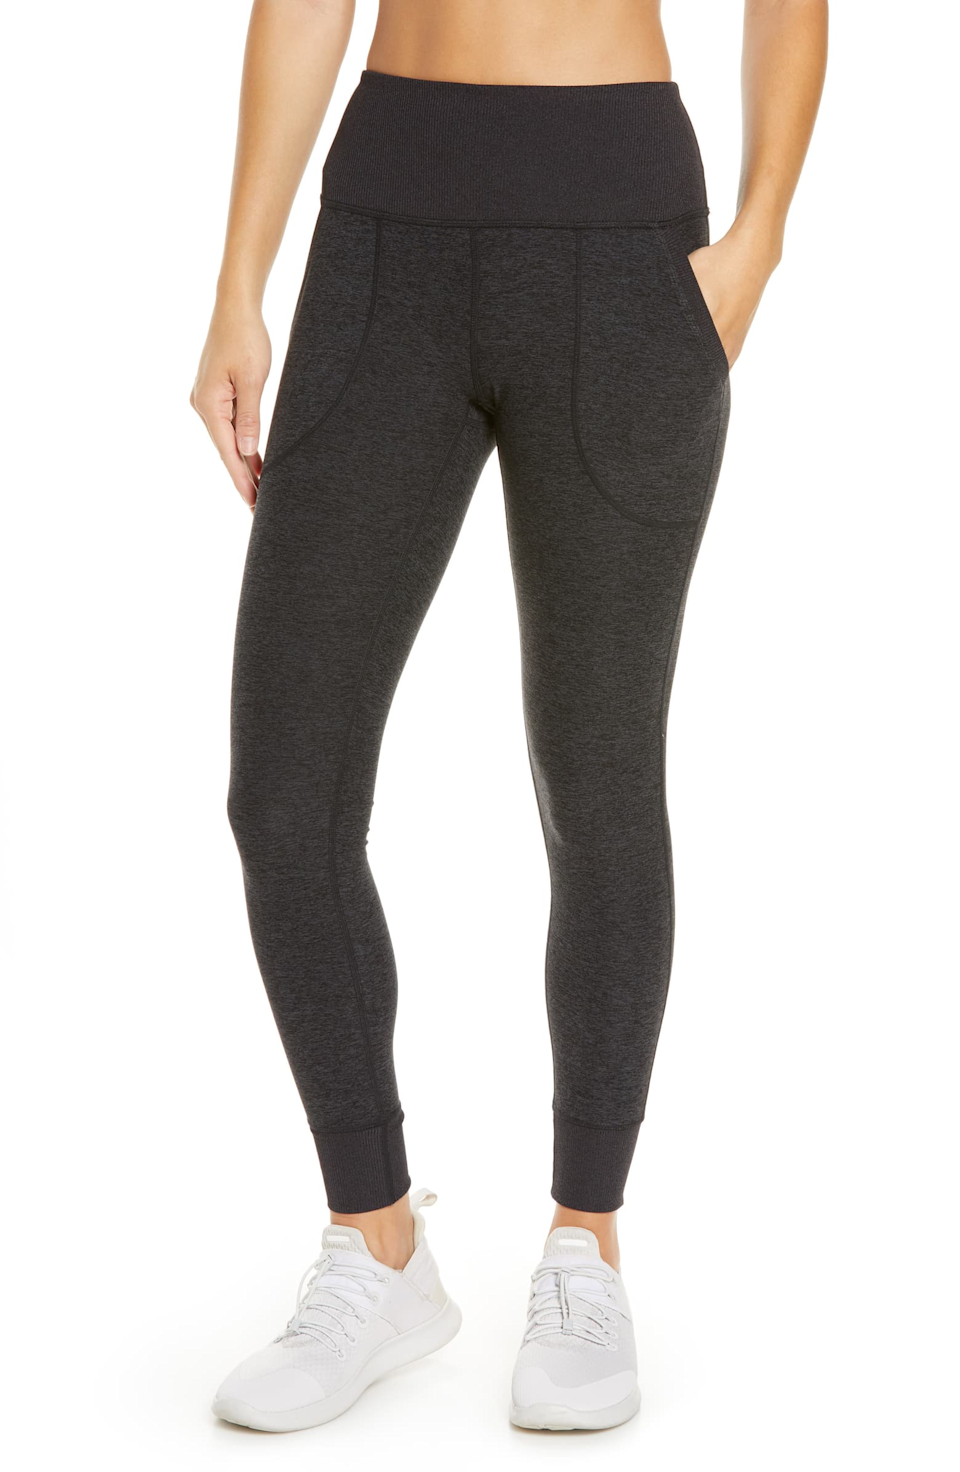 "<h3><a href=""https://www.nordstrom.com/s/zella-restore-soft-pocket-lounge-leggings/5527402"" rel=""nofollow noopener"" target=""_blank"" data-ylk=""slk:Zella Restore Soft Pocket Lounge Leggings"" class=""link rapid-noclick-resp"">Zella Restore Soft Pocket Lounge Leggings<br></a></h3><br>We love these for the high ribbed waistband and ankle cuffs, but the perfect pockets are the extra detail we can't get enough of. <br><br><strong>Zella</strong> Restore Soft Pocket Lounge Leggings, $, available at <a href=""https://go.skimresources.com/?id=30283X879131&url=https%3A%2F%2Fwww.nordstrom.com%2Fs%2Fzella-restore-soft-pocket-lounge-leggings%2F5527402"" rel=""nofollow noopener"" target=""_blank"" data-ylk=""slk:Nordstrom"" class=""link rapid-noclick-resp"">Nordstrom</a>"